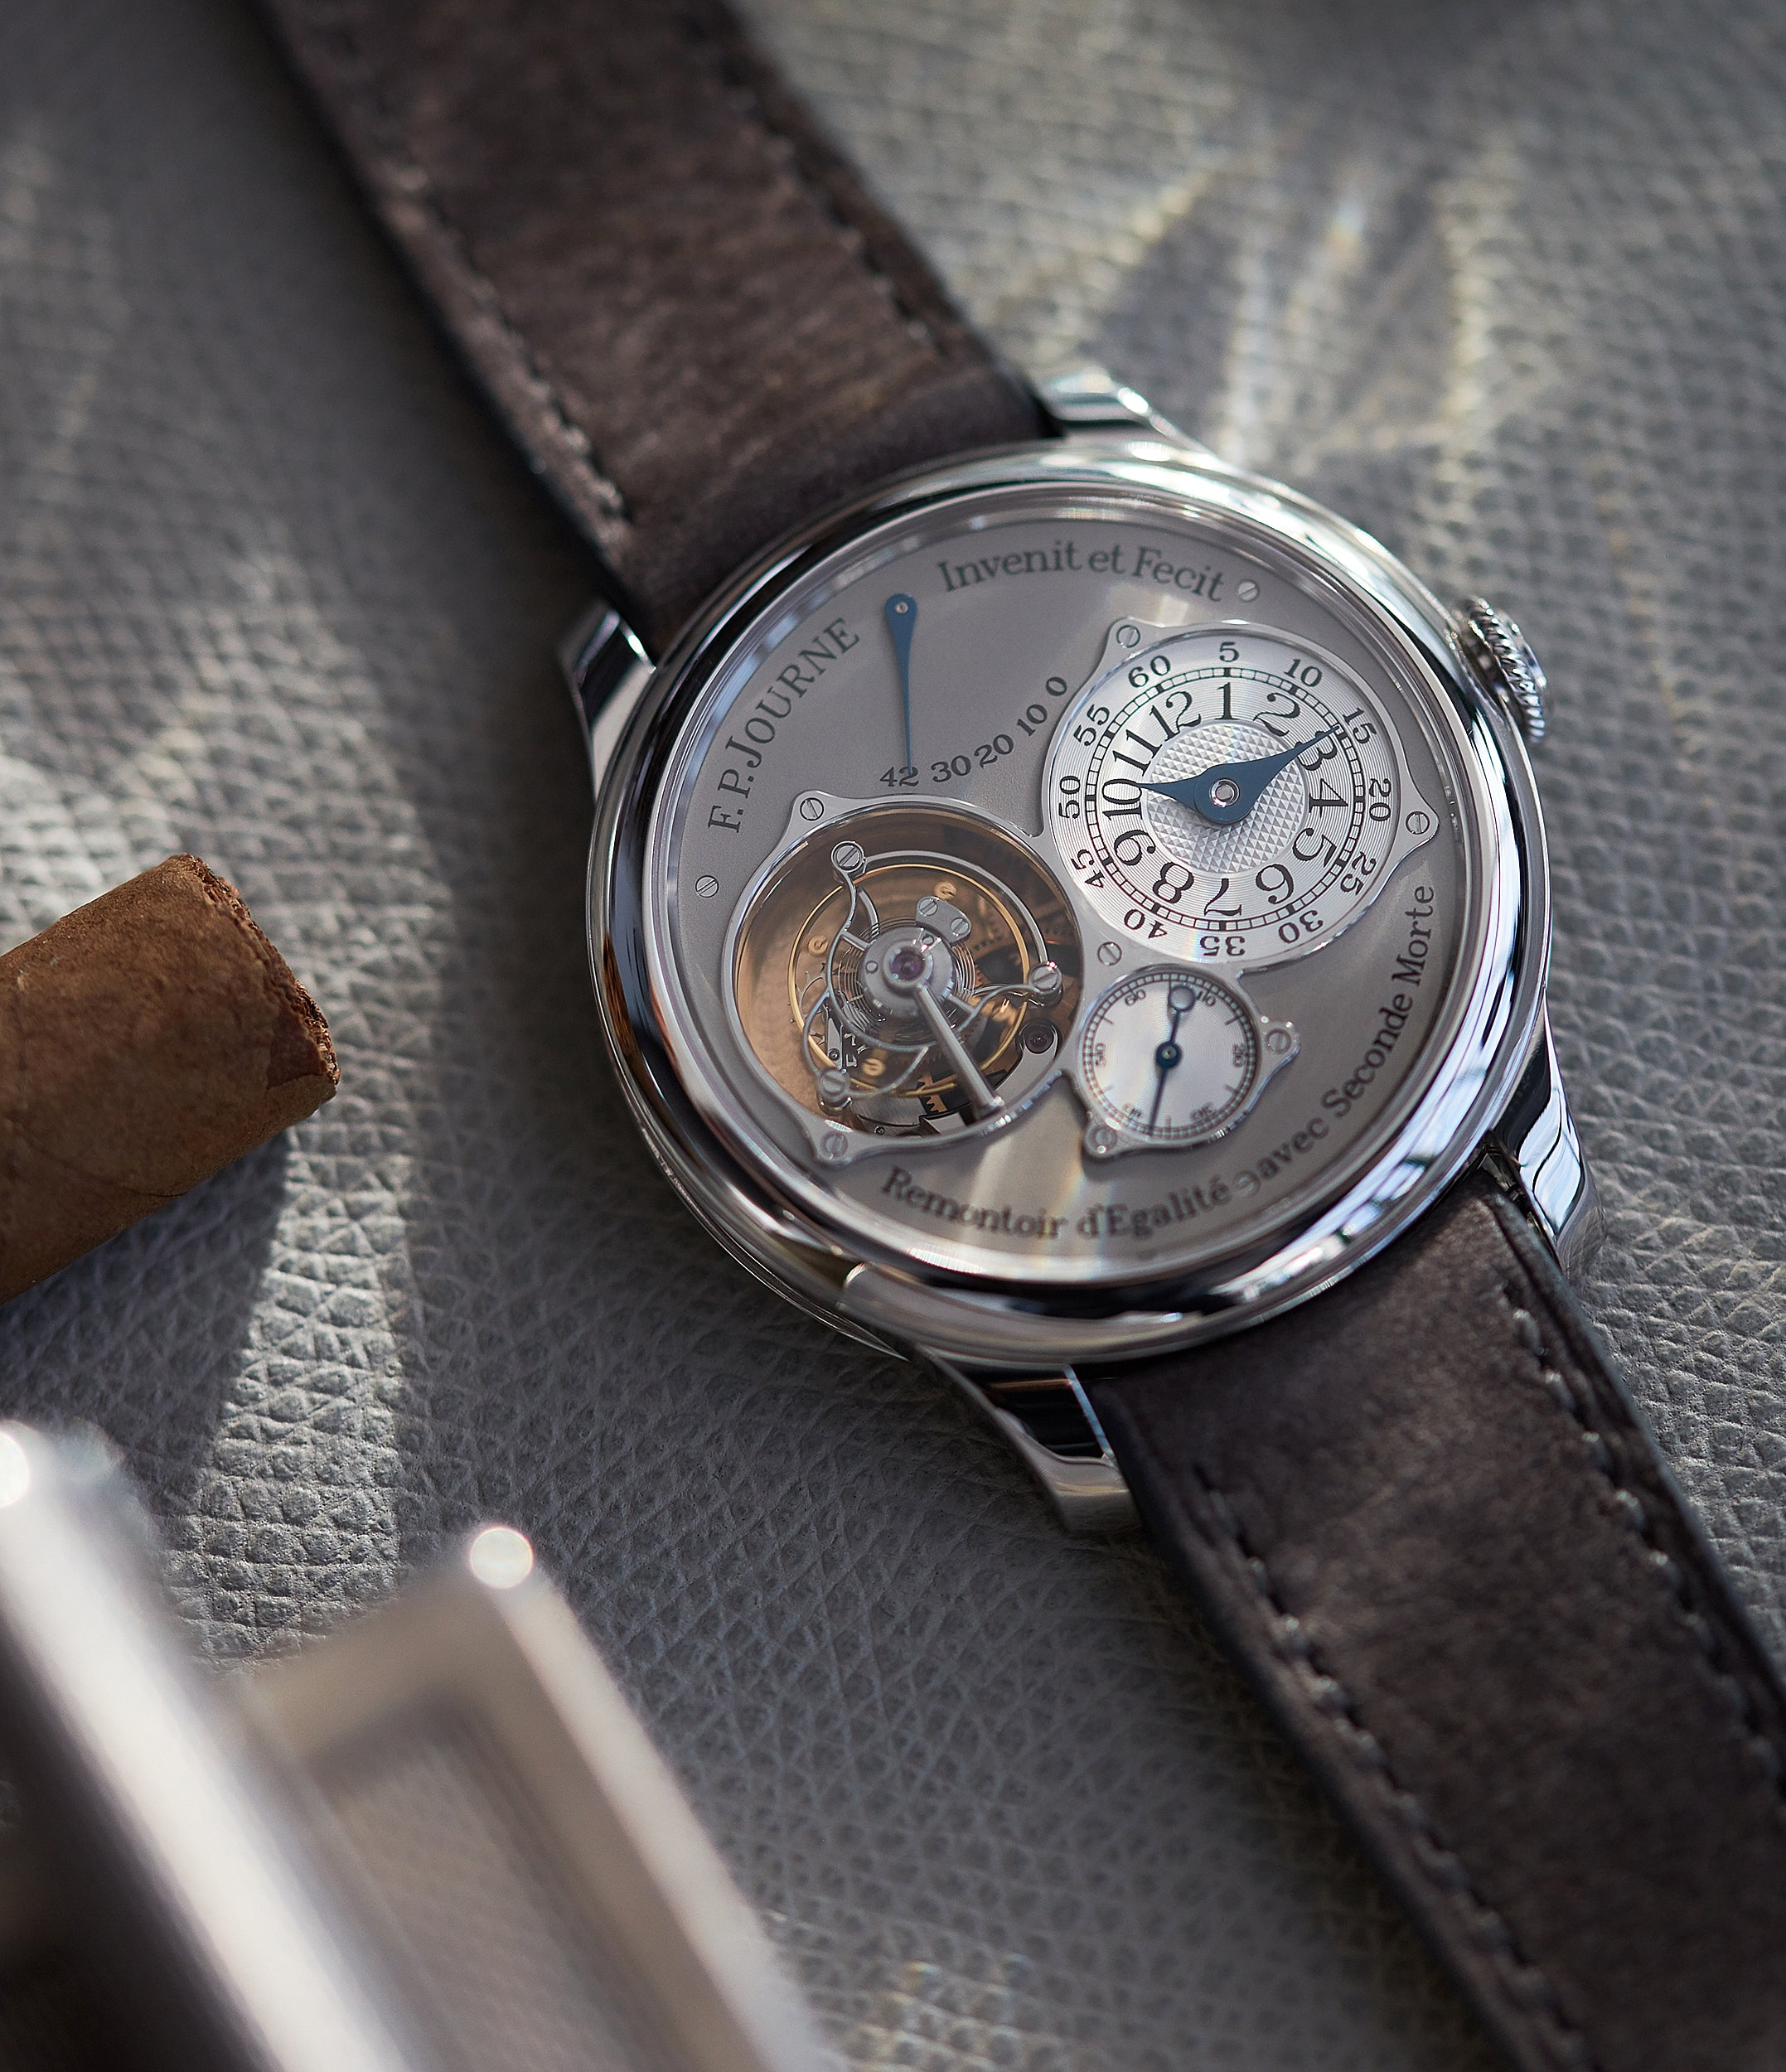 F. P. Journe Tourbillon Souverain TN dead-beat seconds 40mm platinum pre-owned watch for sale online at A Collected Man London UK specialist of rare watches